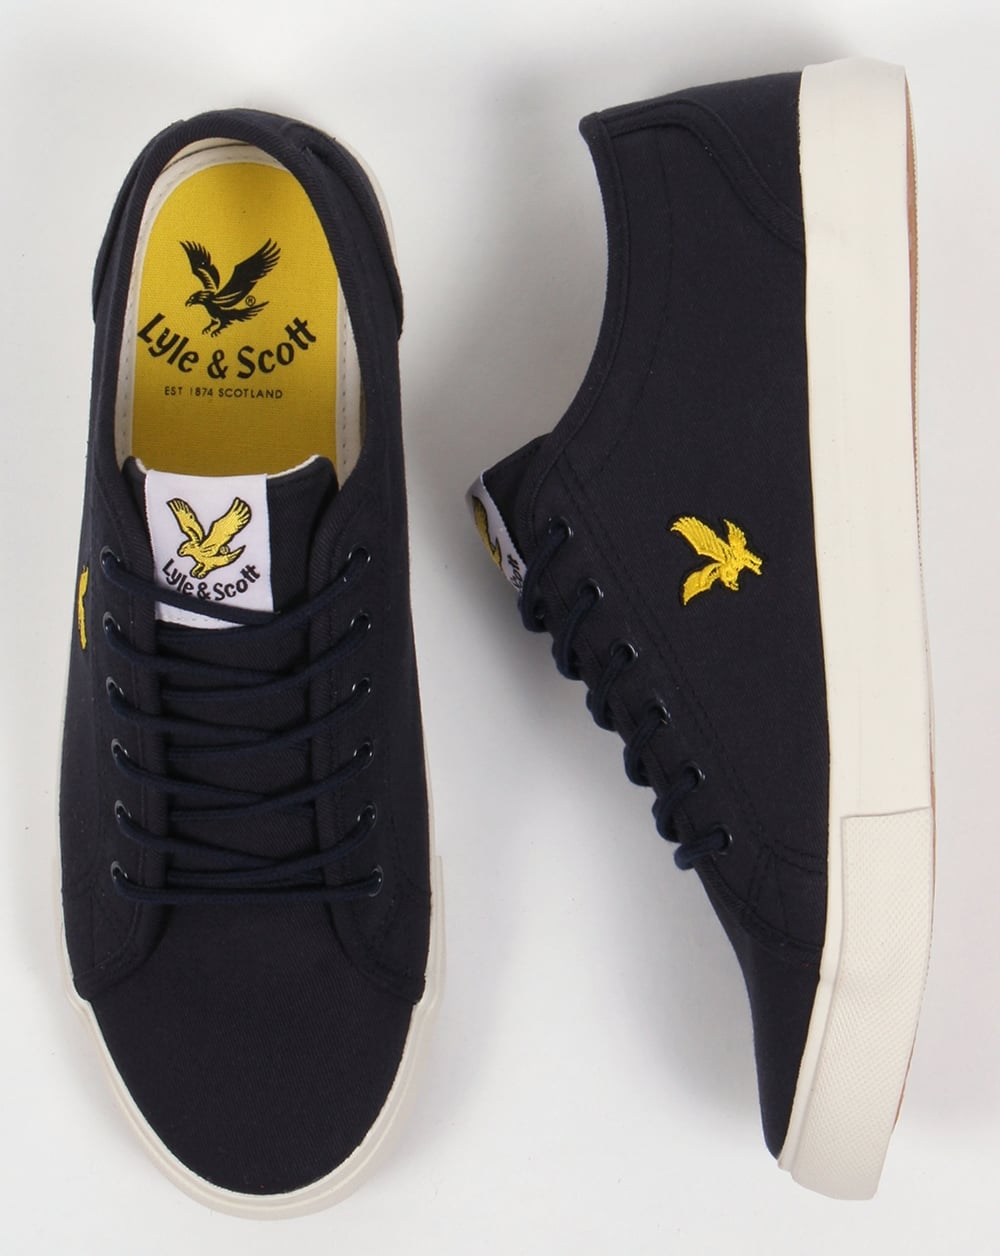 661b11c0d3b1 Lyle And Scott Teviot Twill Canvas Pumps New Navy